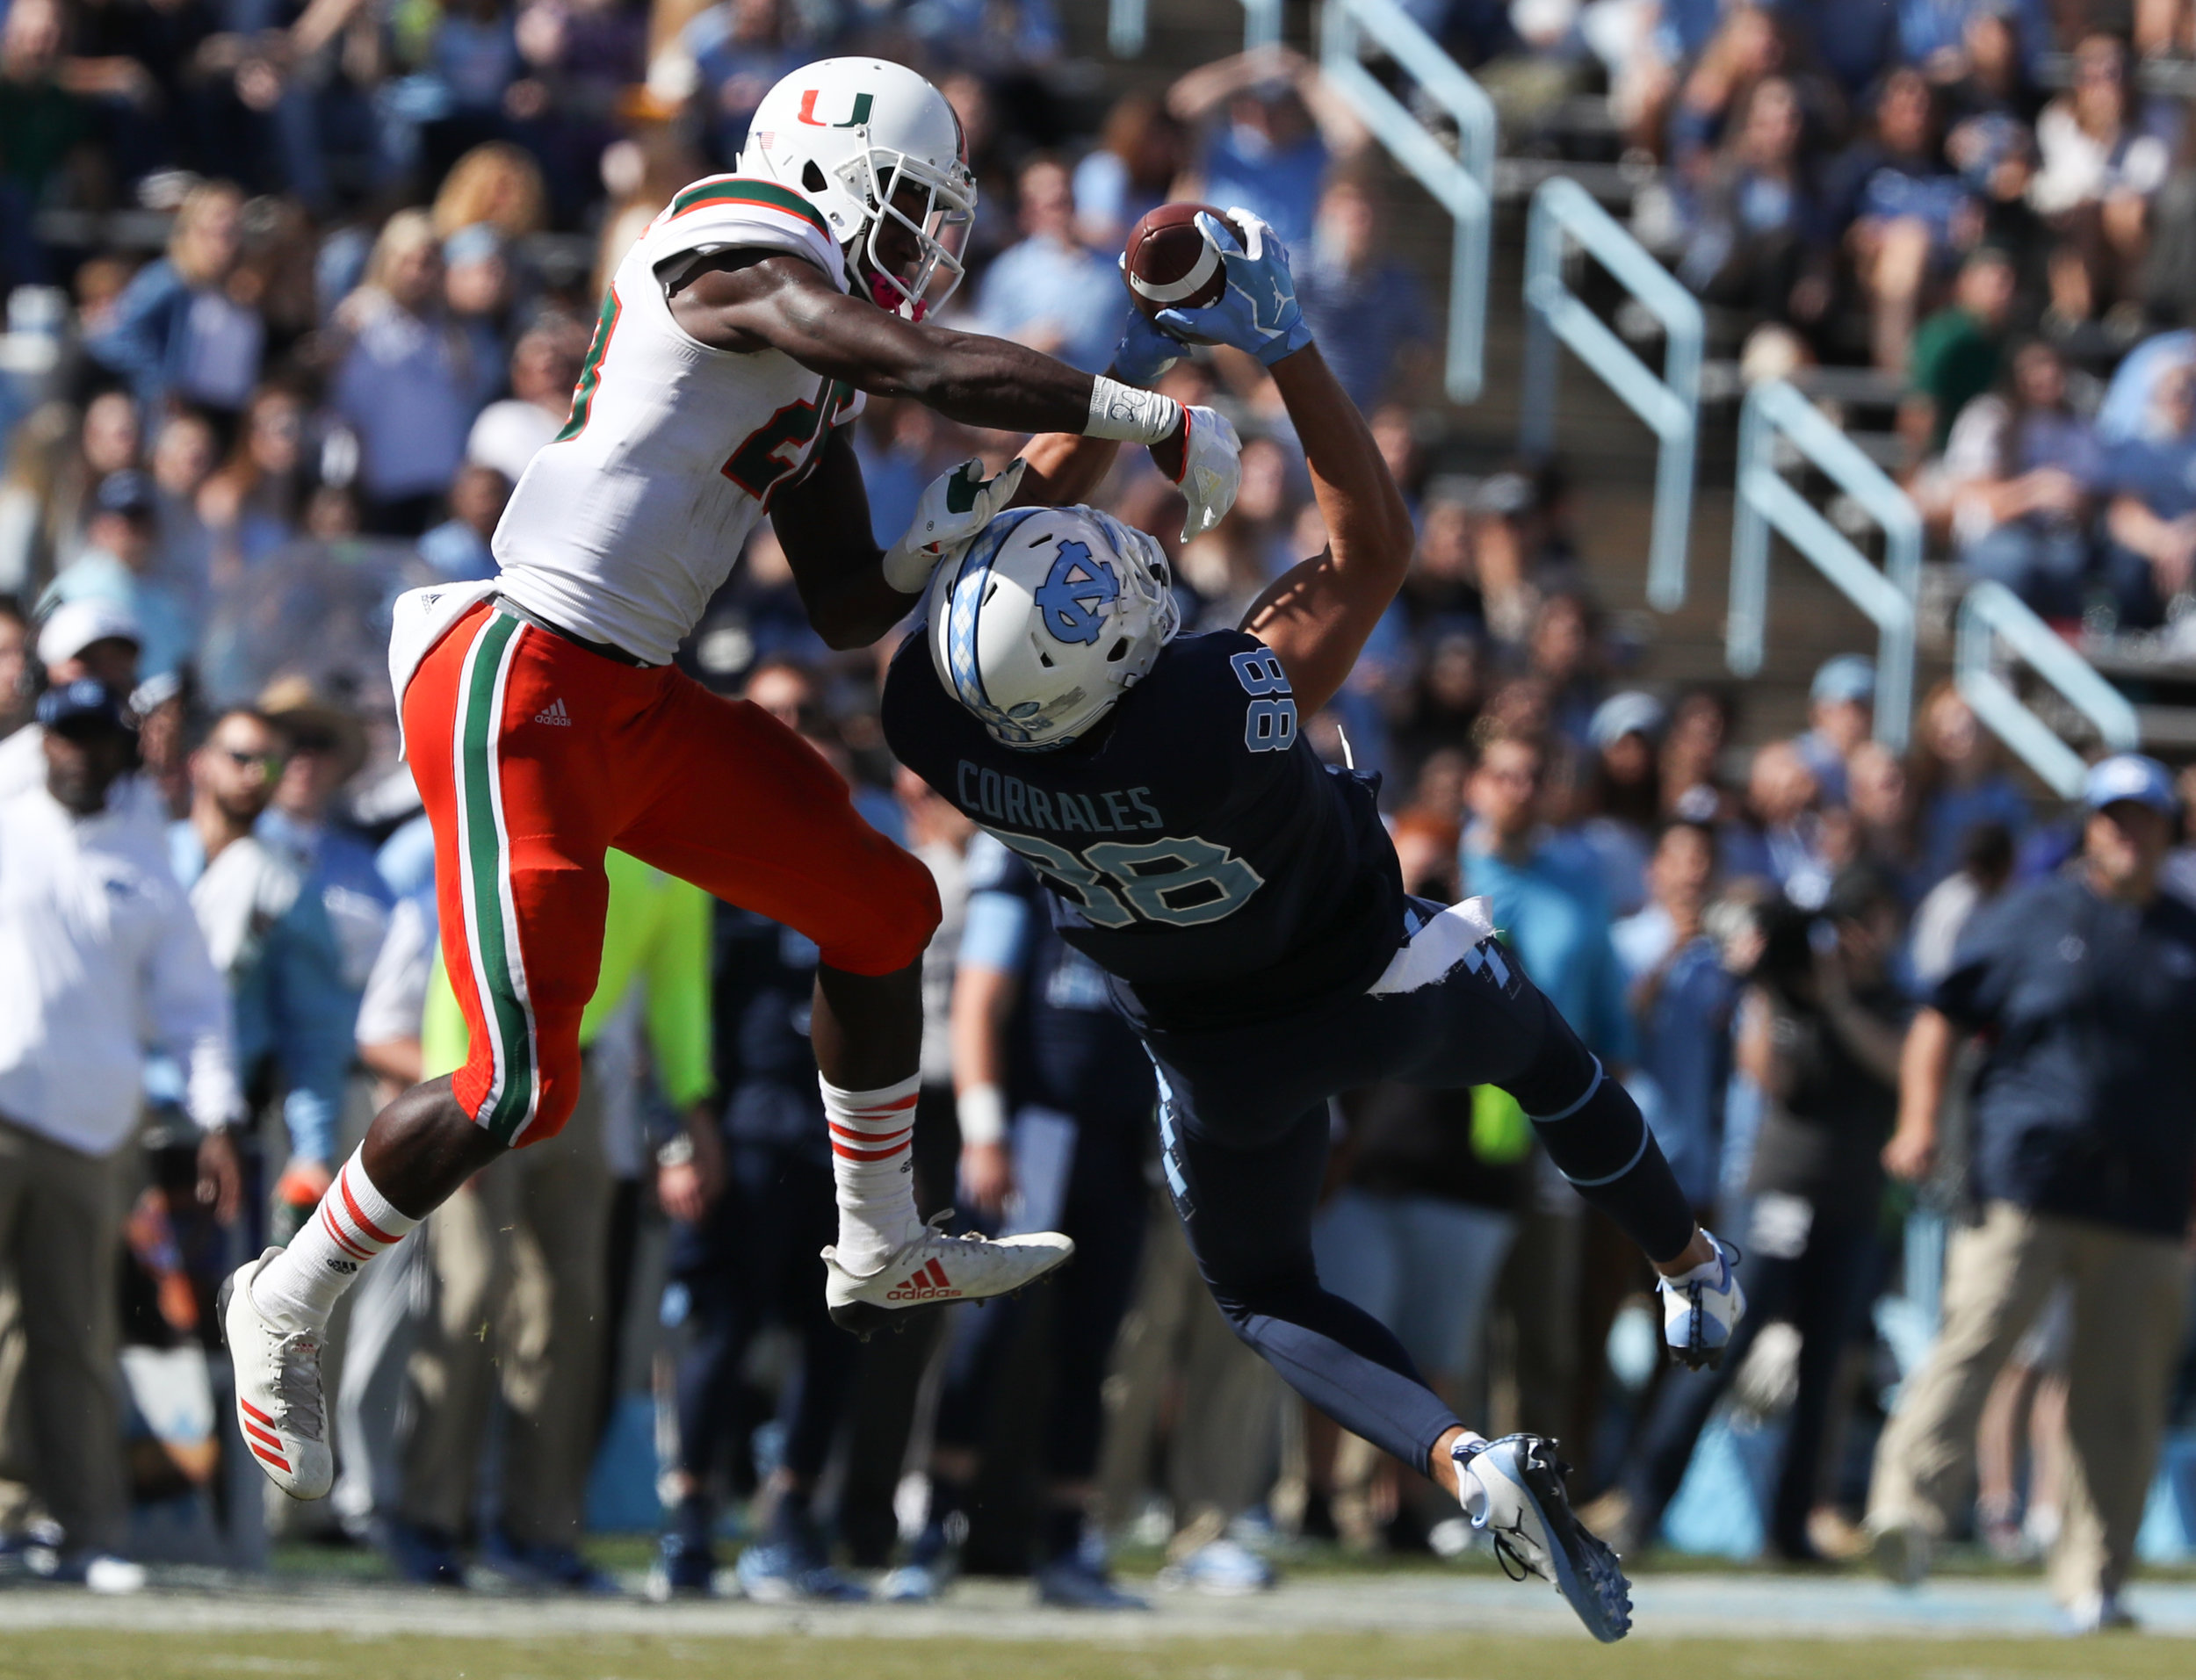 UNC's Beau Corrales, right, grabs a pass in front of Miami's Michael Jackson during Saturday's game at Kenan Memorial Stadium in Chapel Hill, NC on October 28, 2017. The Hurricanes beat the Tar Heels 24 to 19.